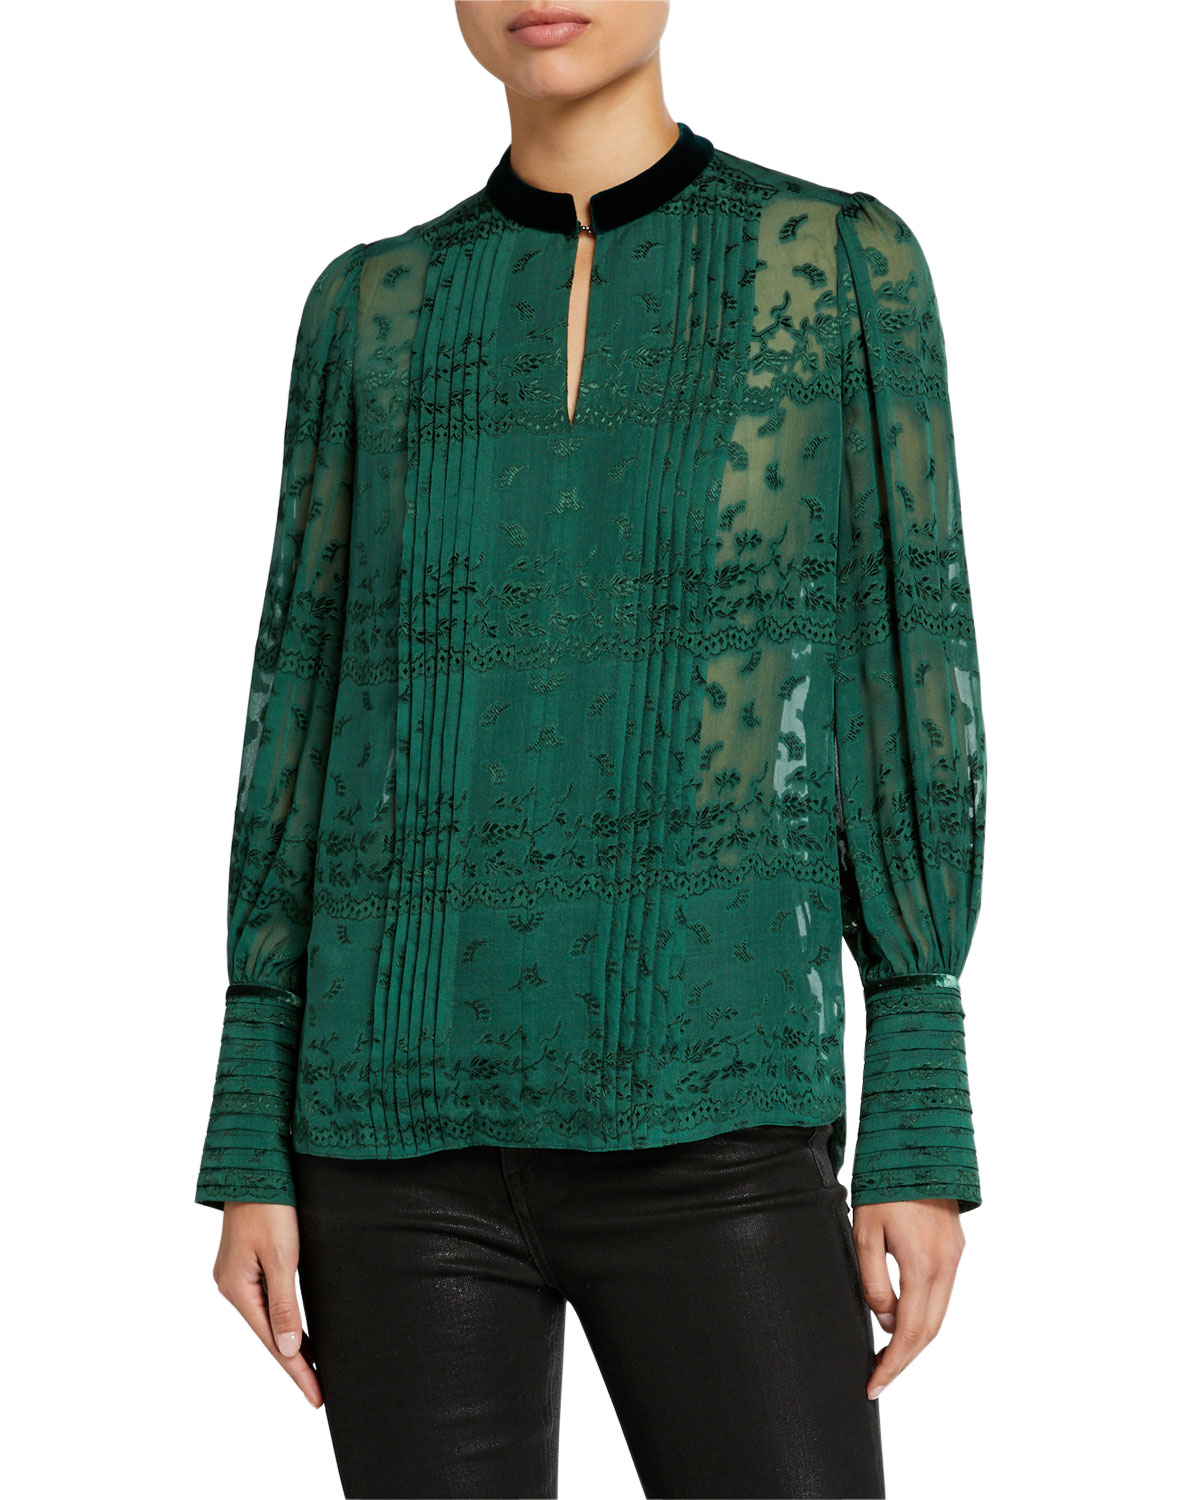 Elie Tahari Tops LACI EMBROIDERED LONG-SLEEVE PINTUCKED BLOUSE W/ MANDARIN COLLAR